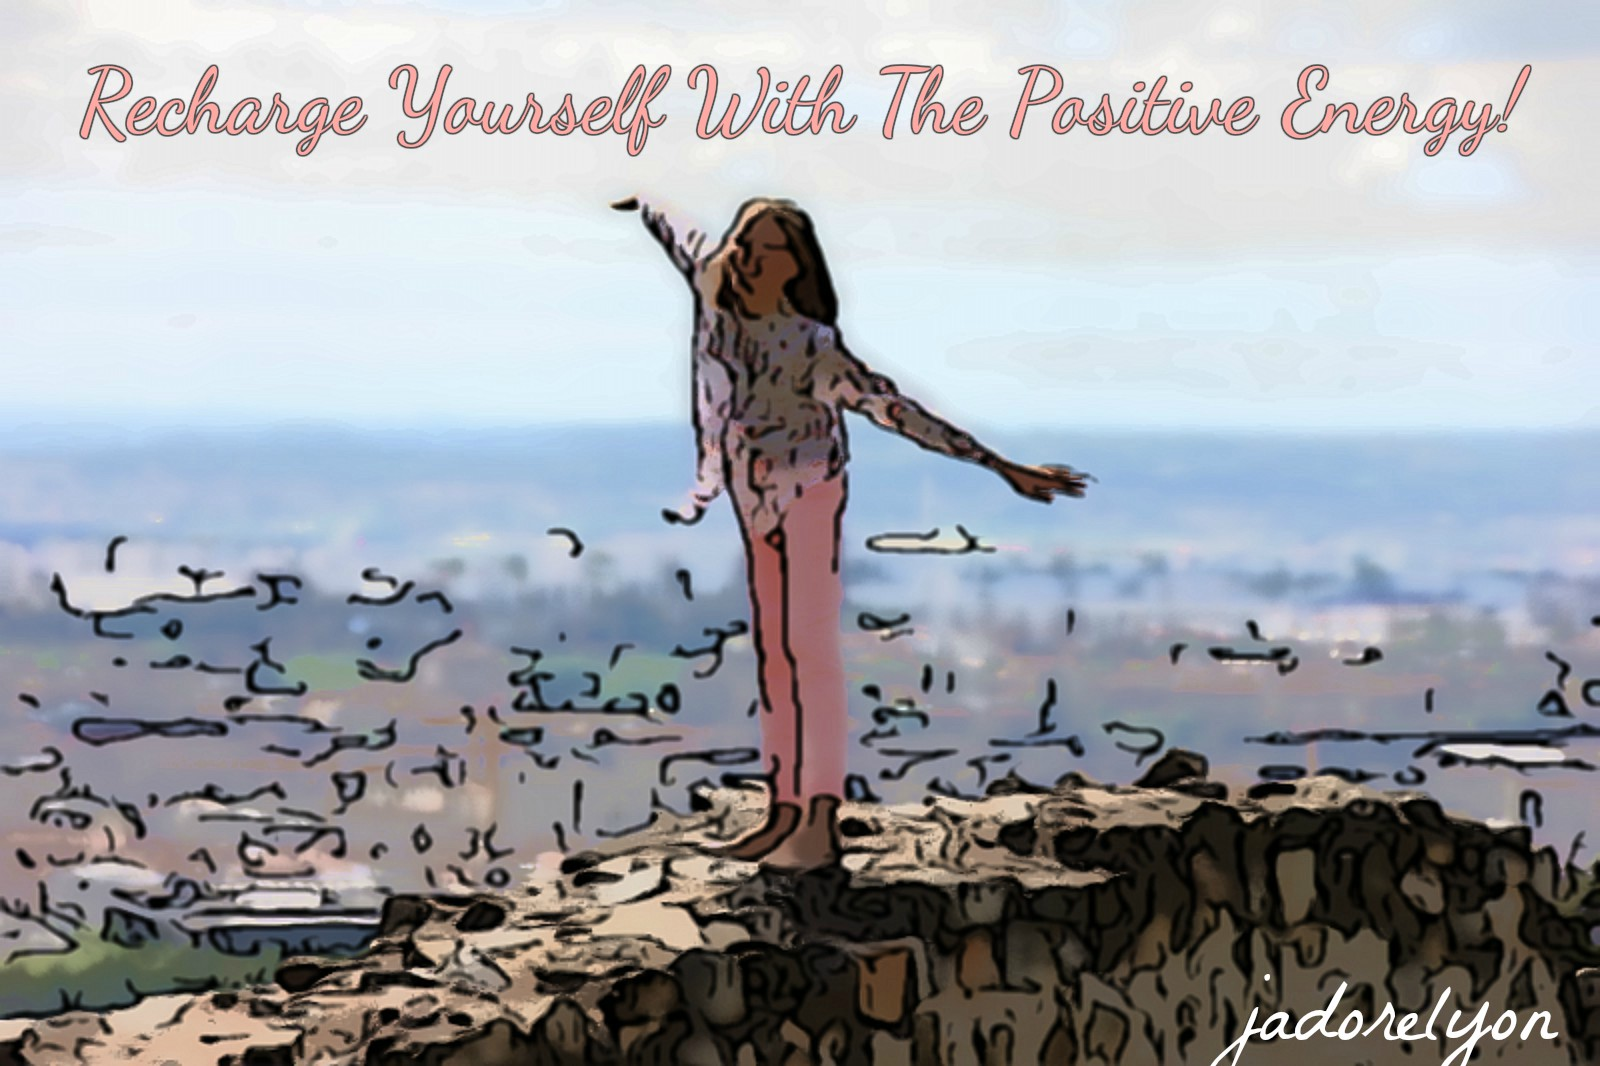 Recharge yourself with the positive energy